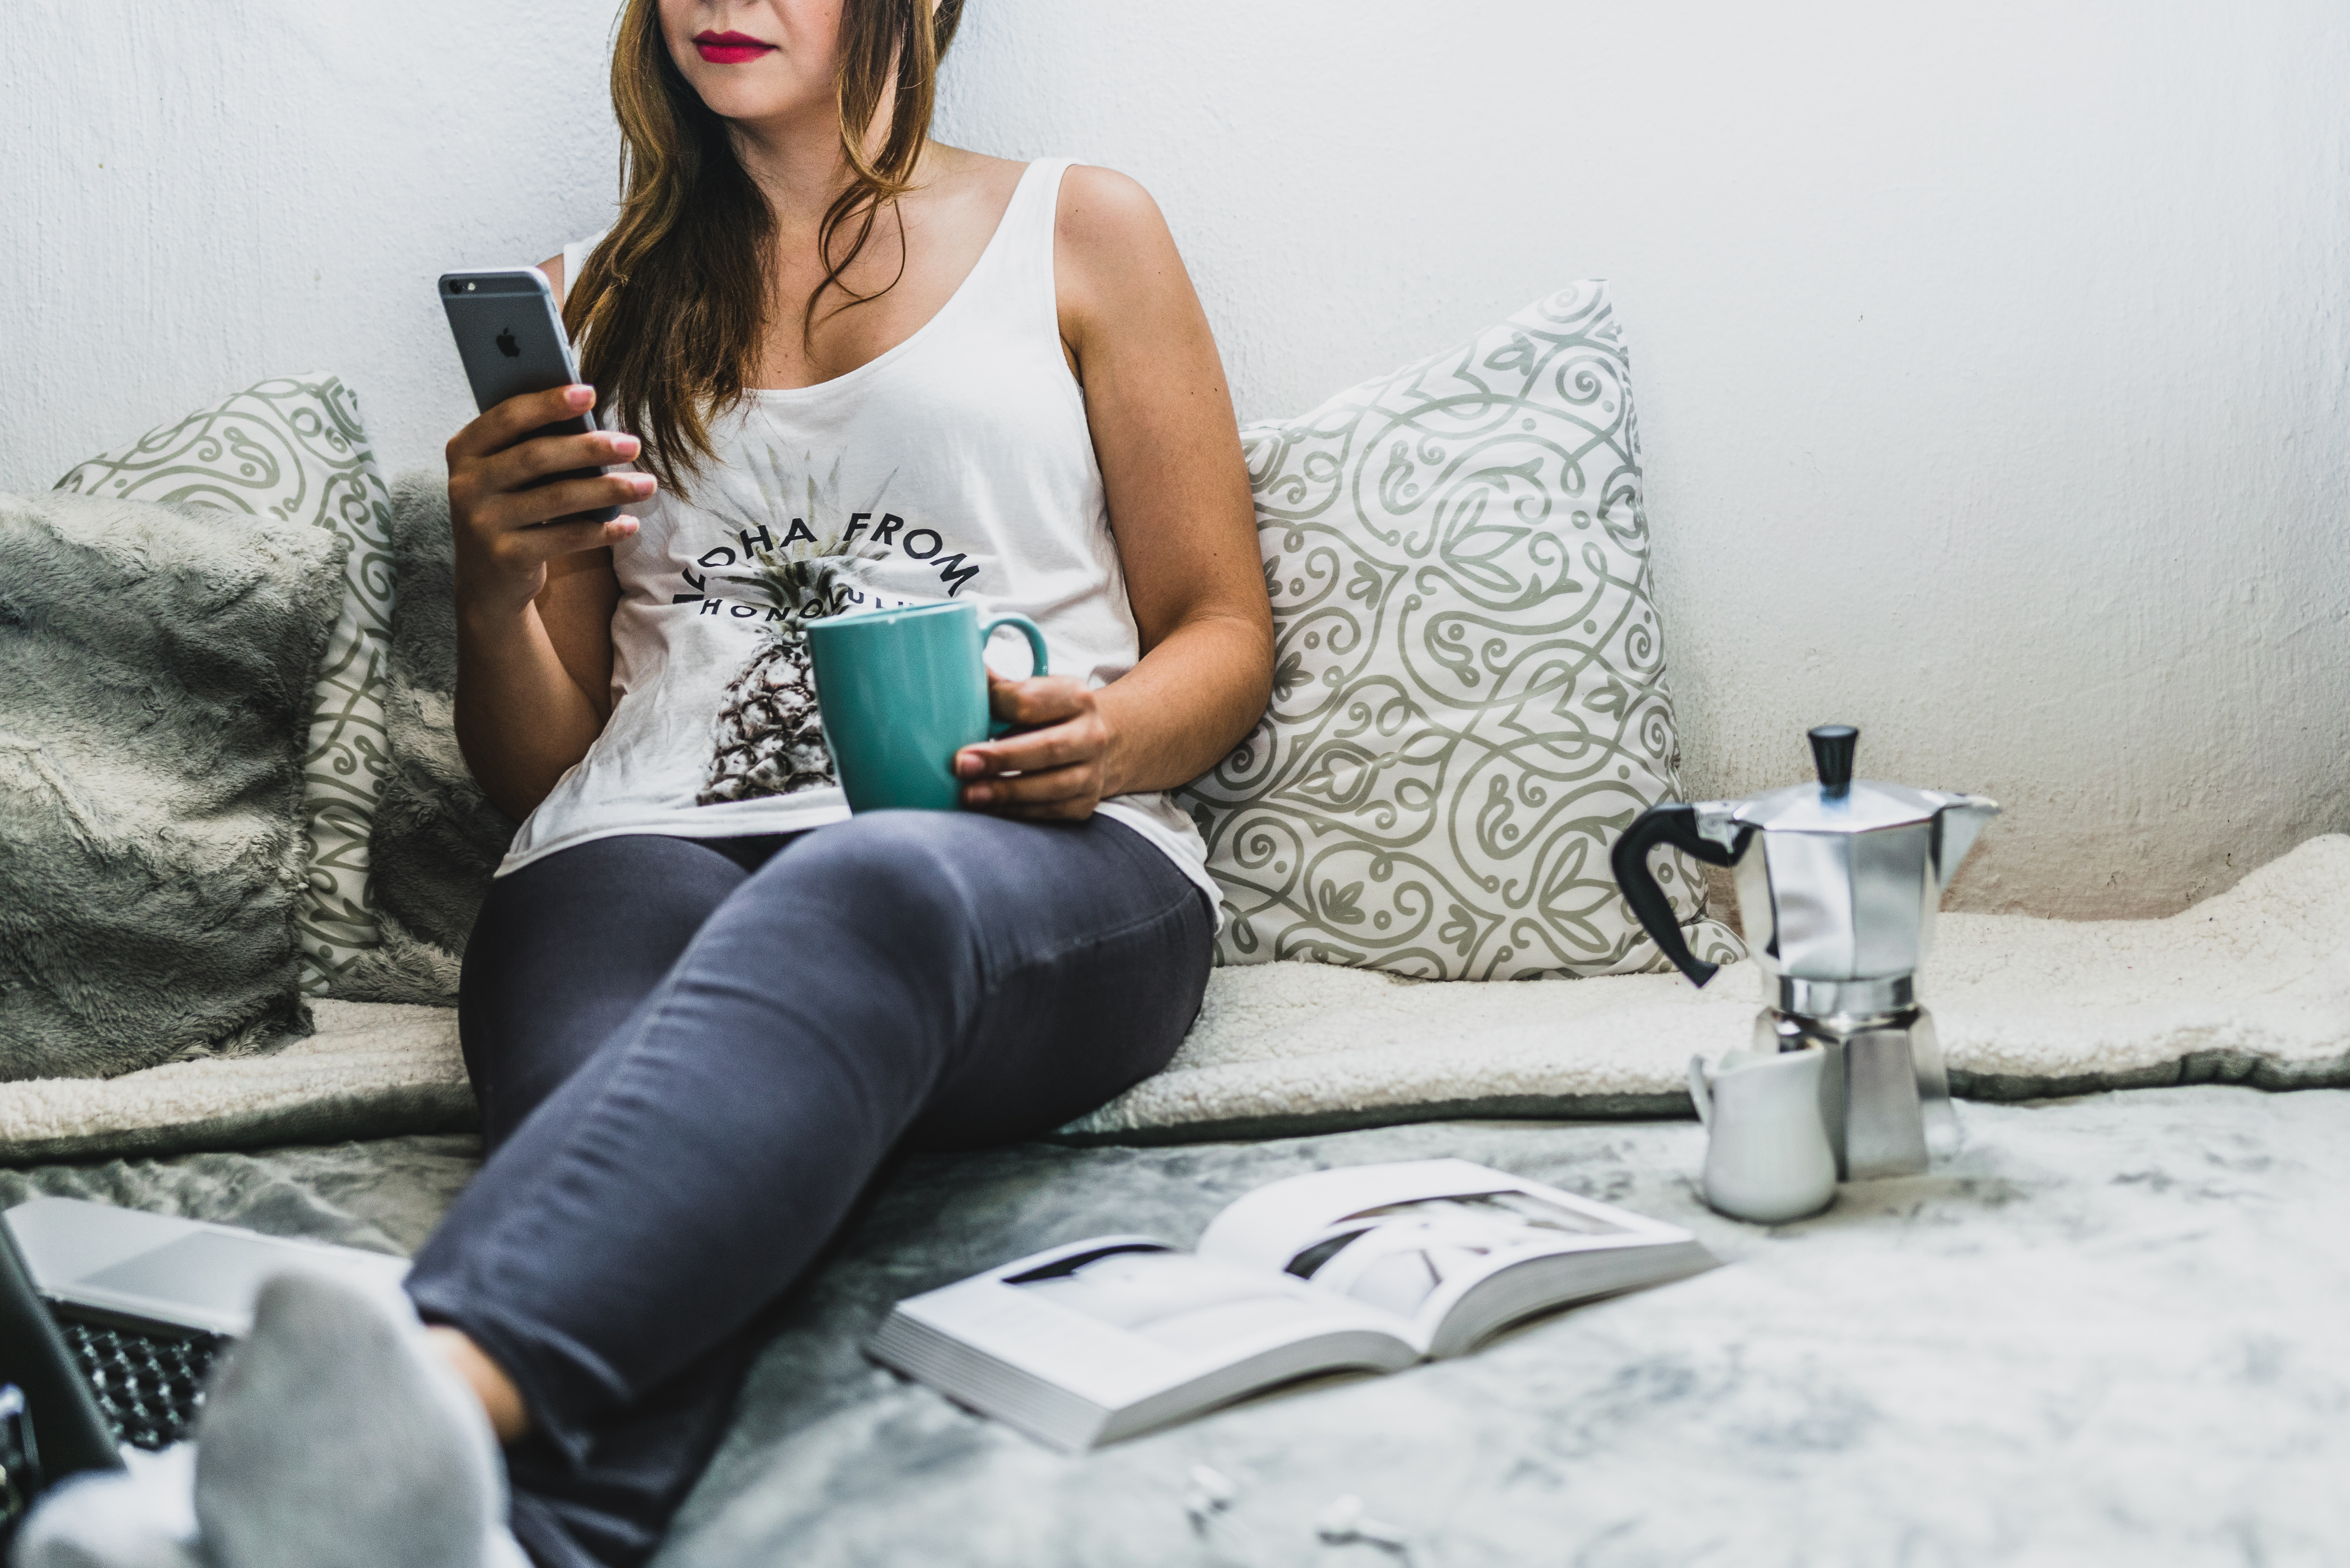 Woman sitting on bed with coffee browsing phone.